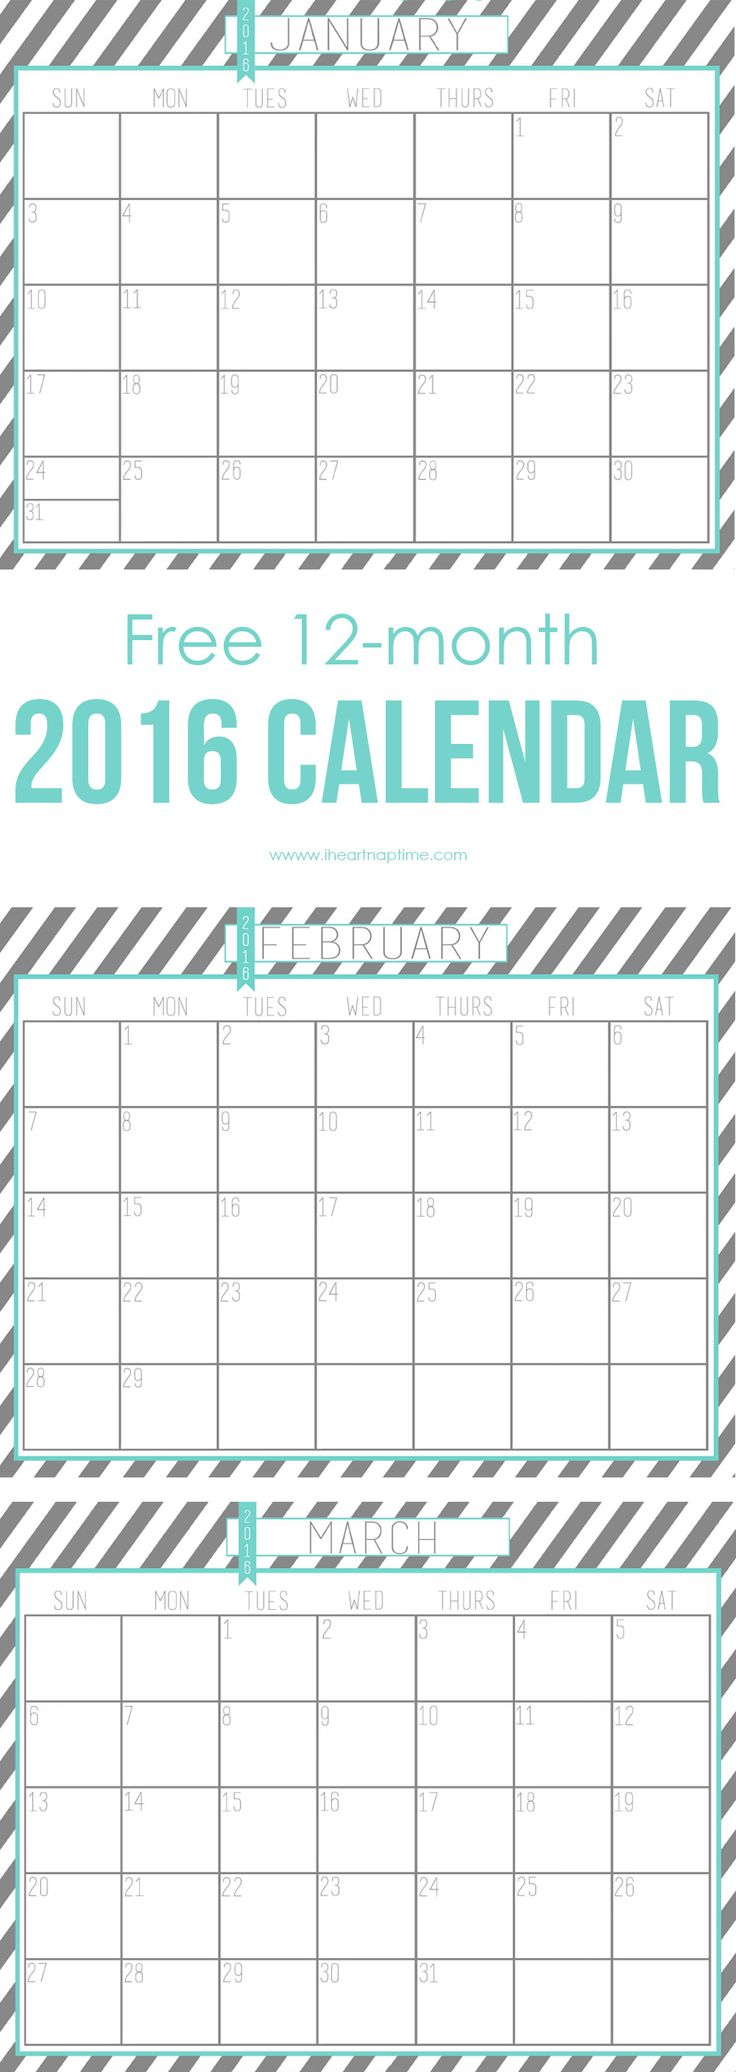 2016 Free Printable Calendar - perfect for getting organized in the New Year!